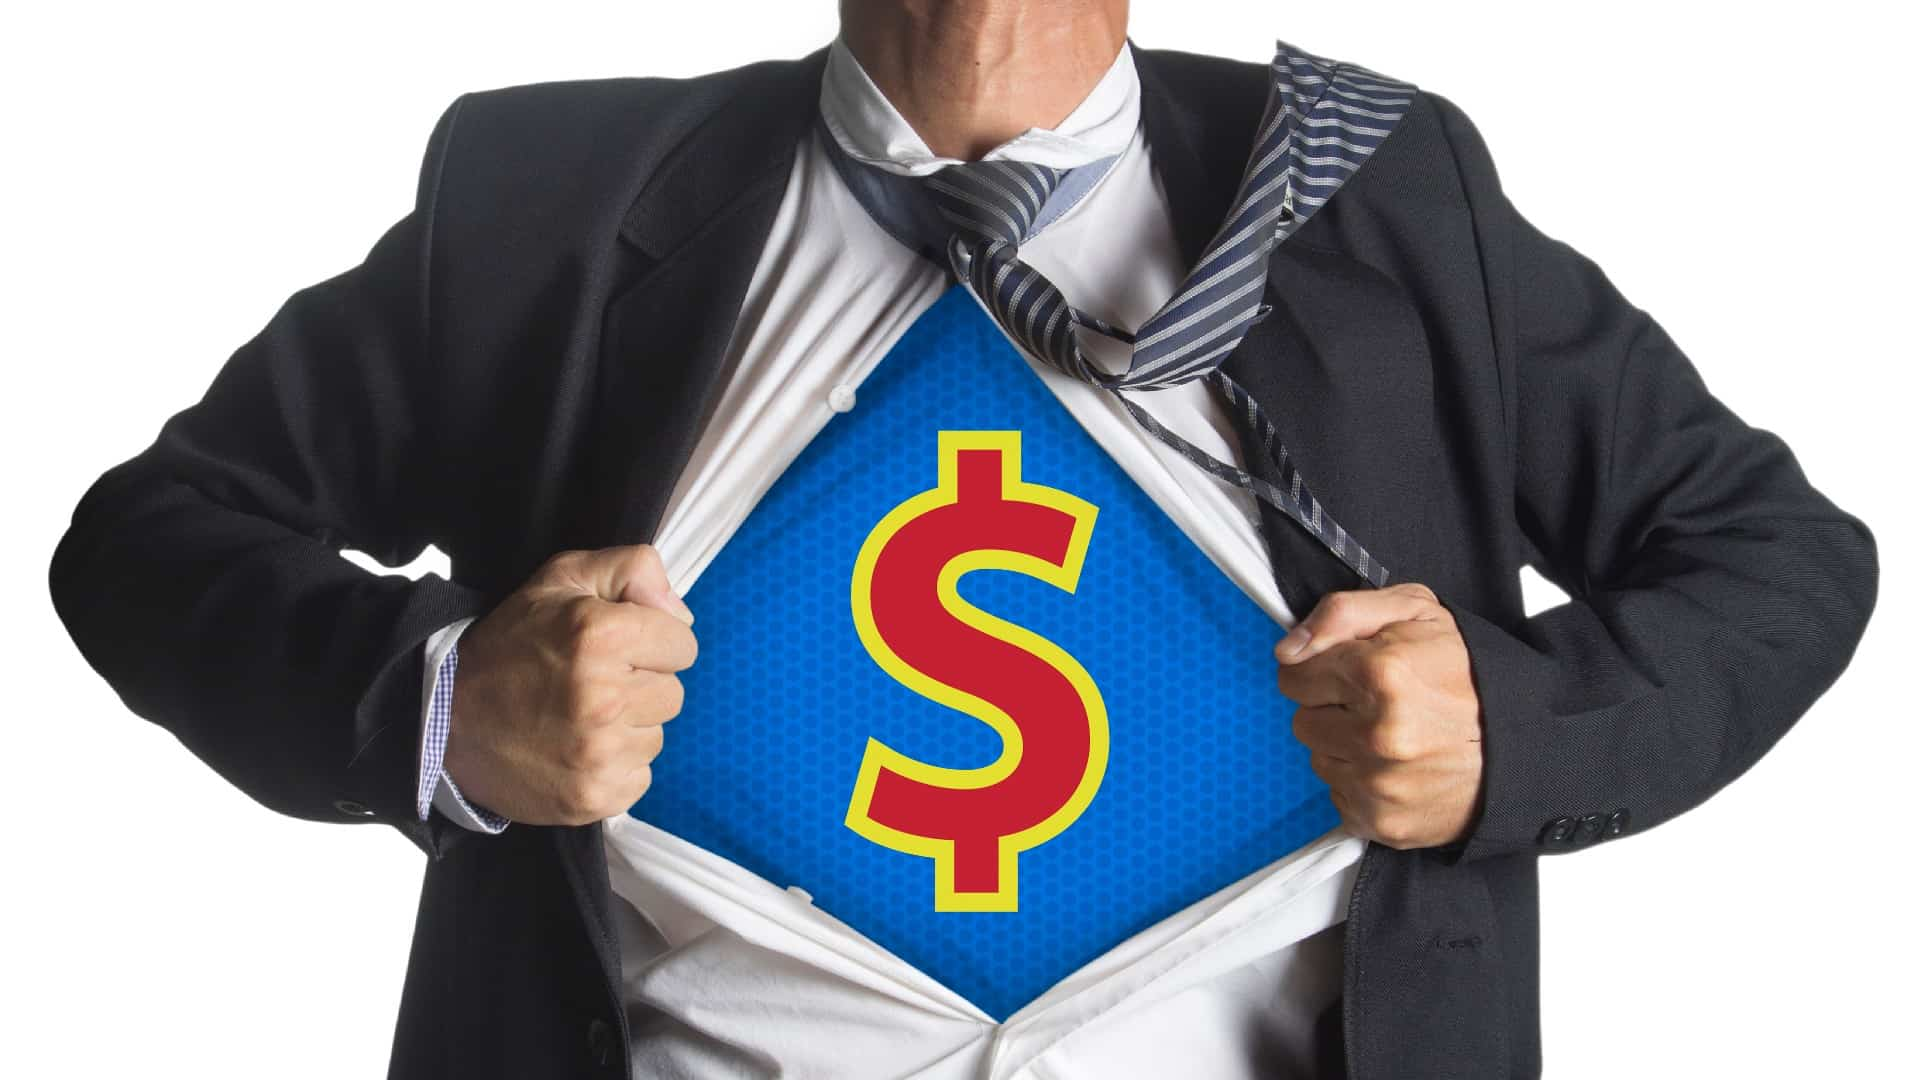 A business man open his shirt to reveal a superhero style $ on his chest, indicating a strong ASX share price